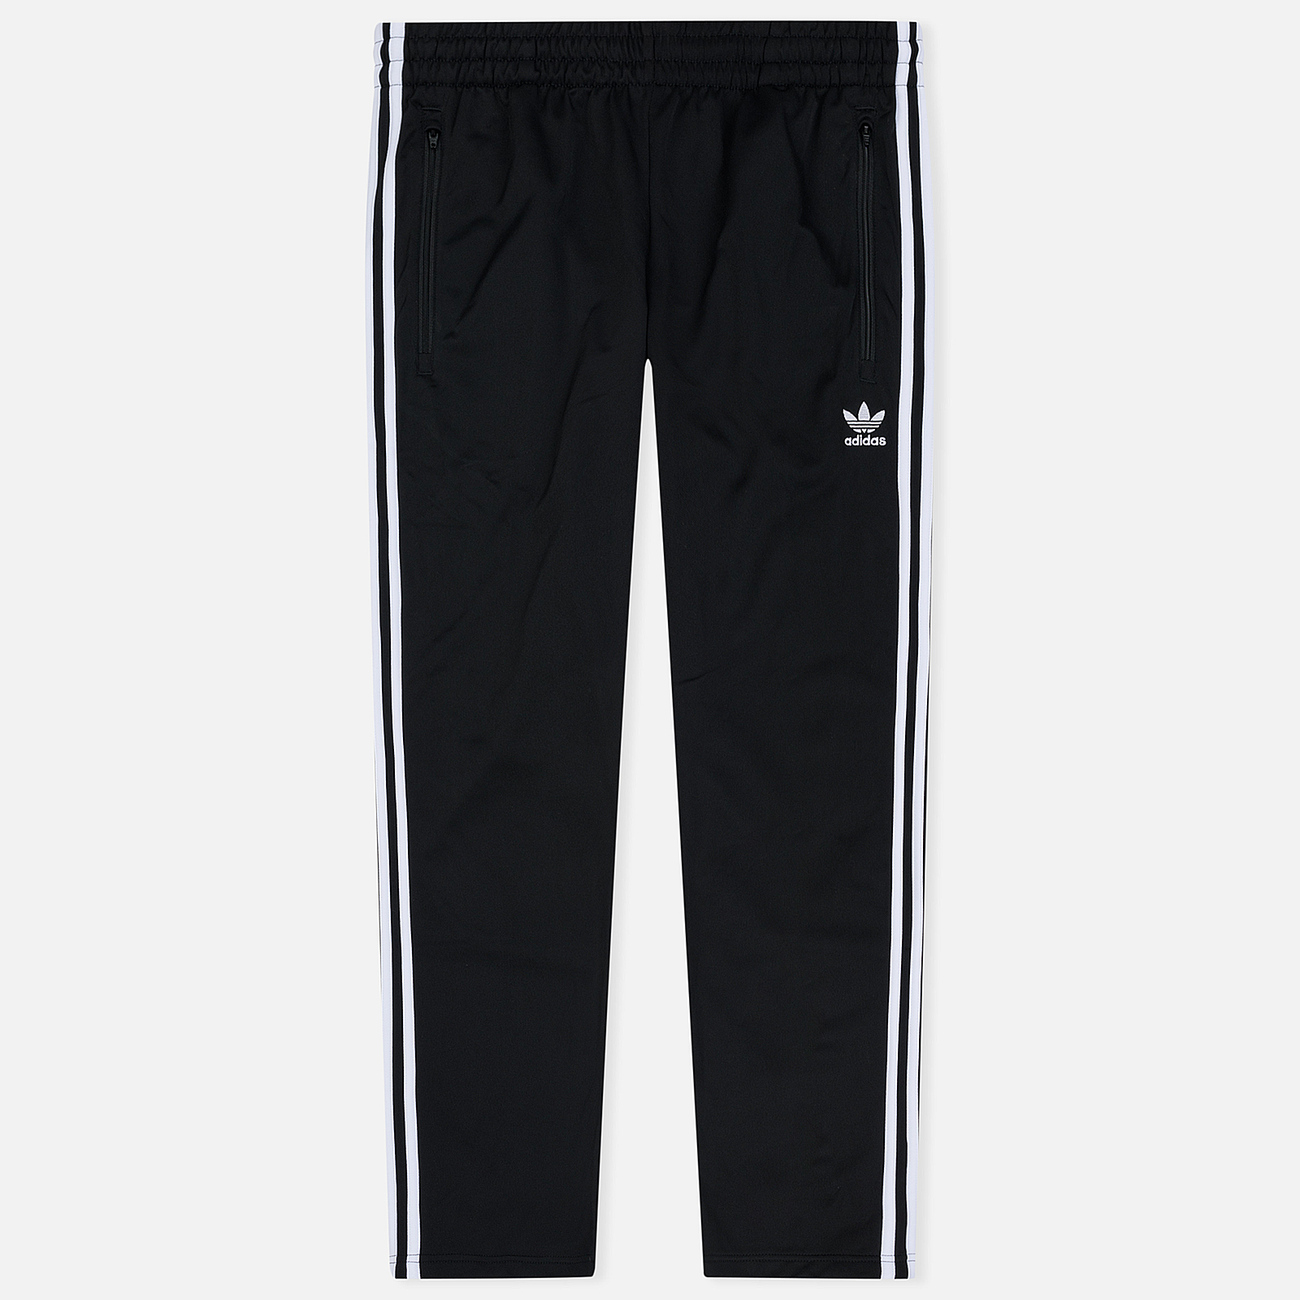 Мужские брюки adidas Originals Firebird SST Black